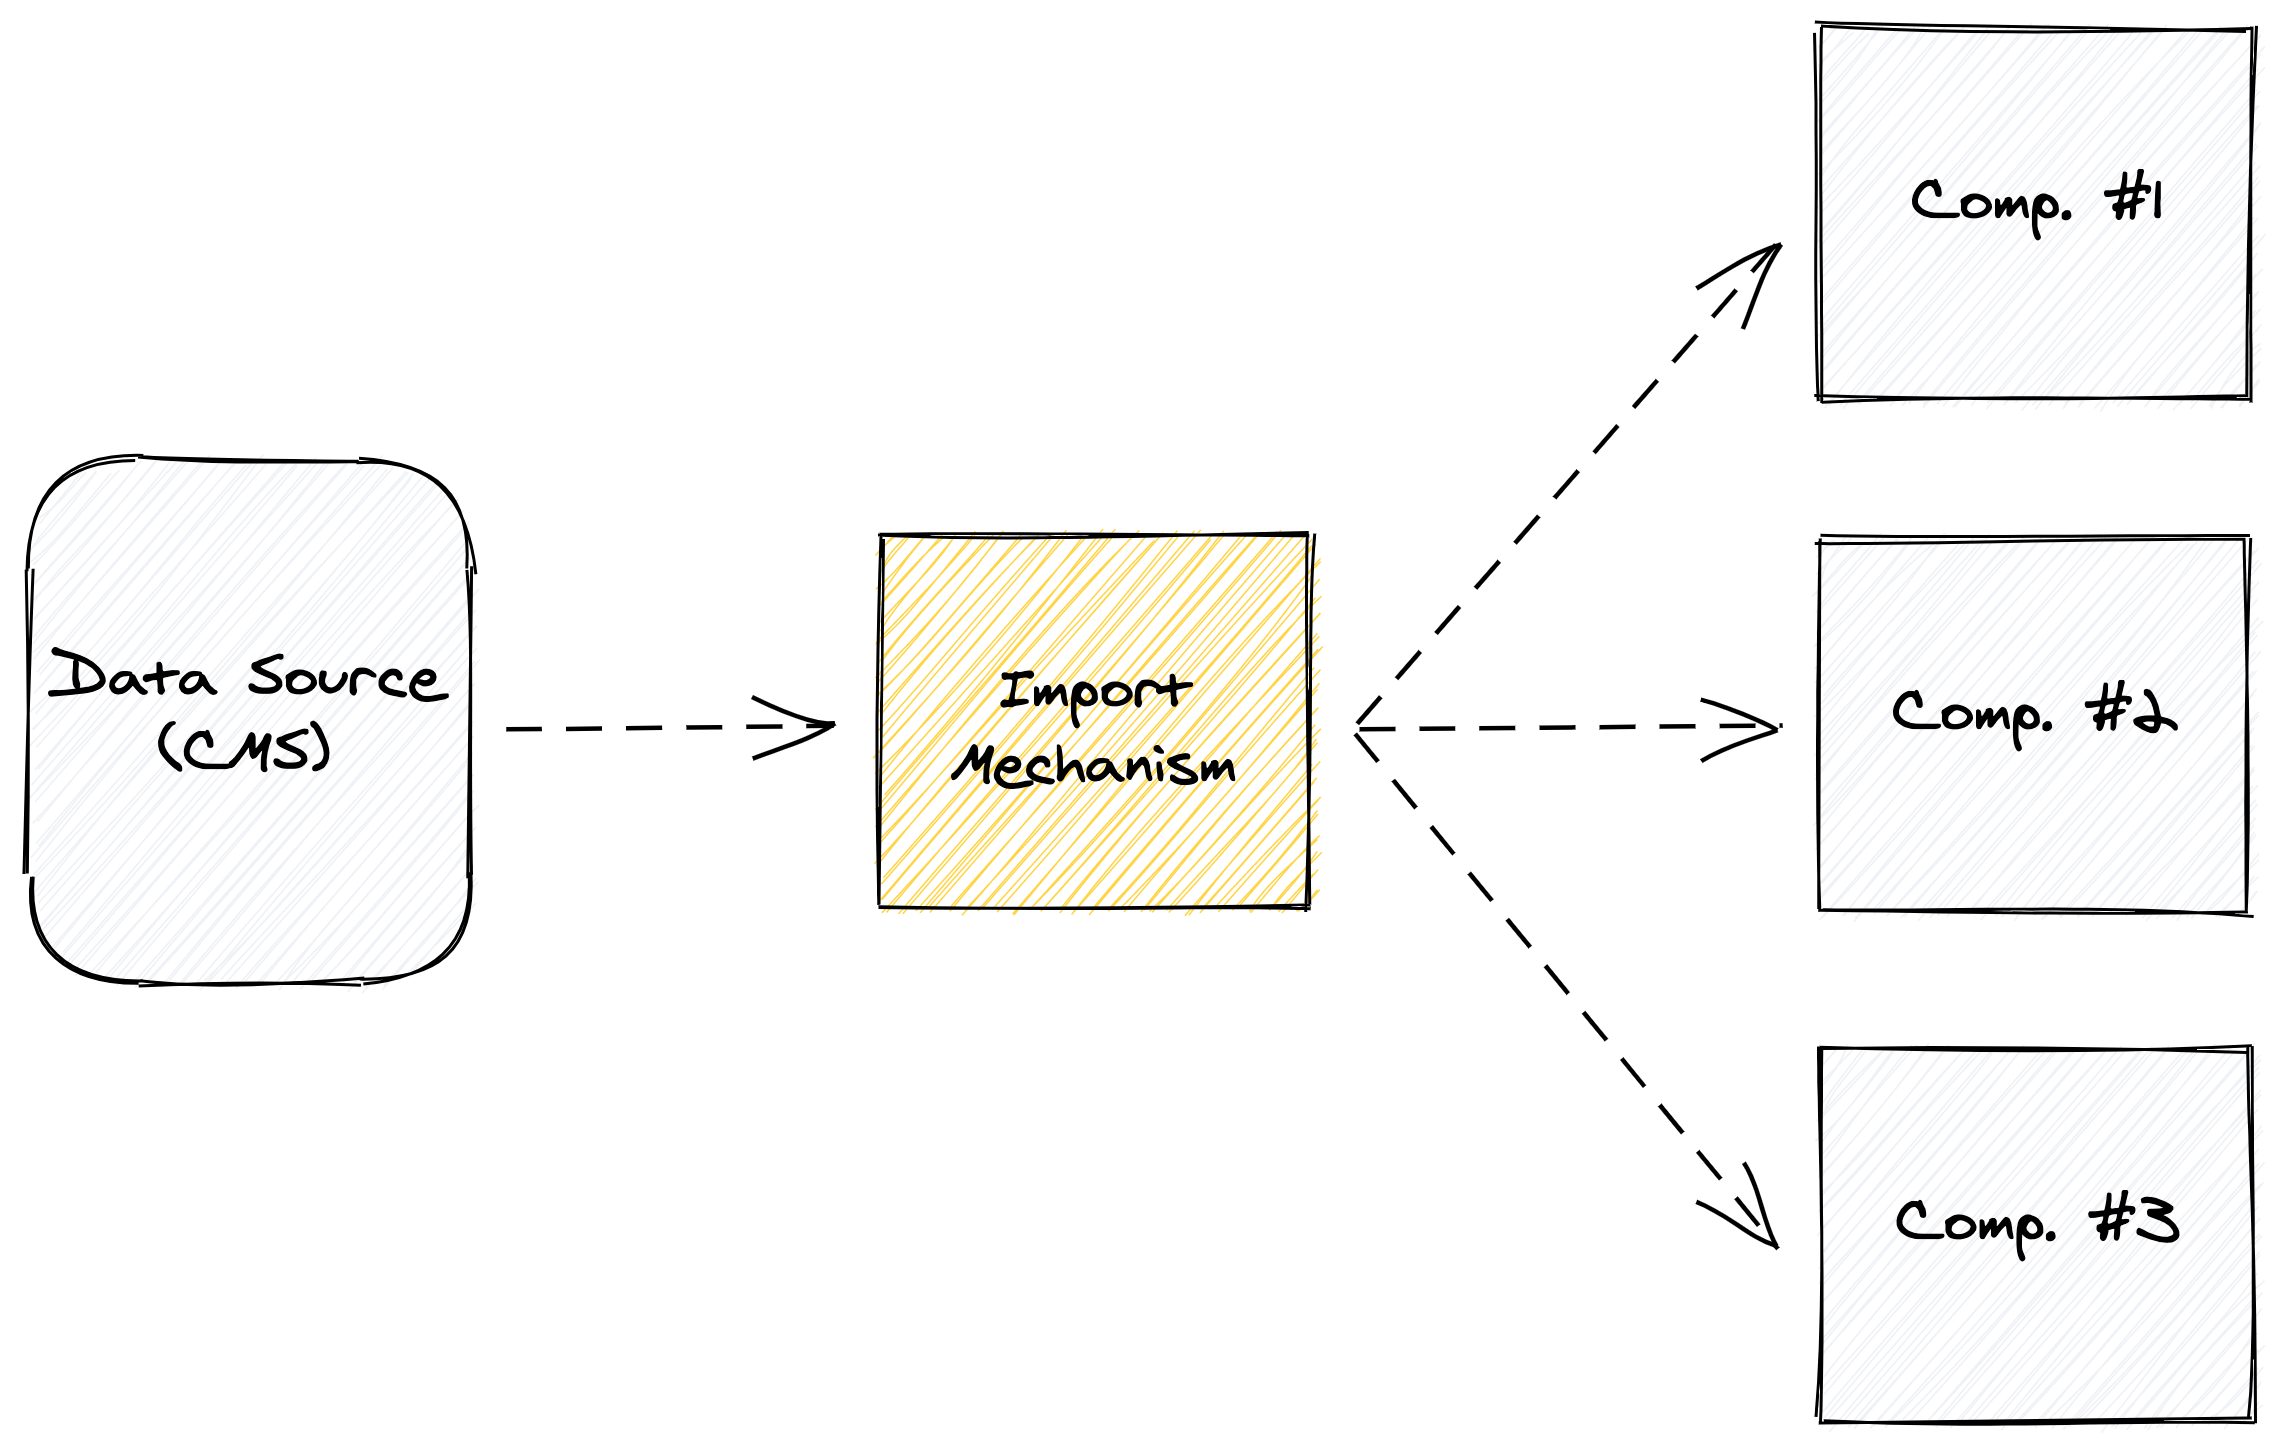 Another illustration, this time where the yellow box is labeled import mechanism, and it has three arrows, each pointing to a white square, labeled, component 1, component 2, and component 3, respectively.